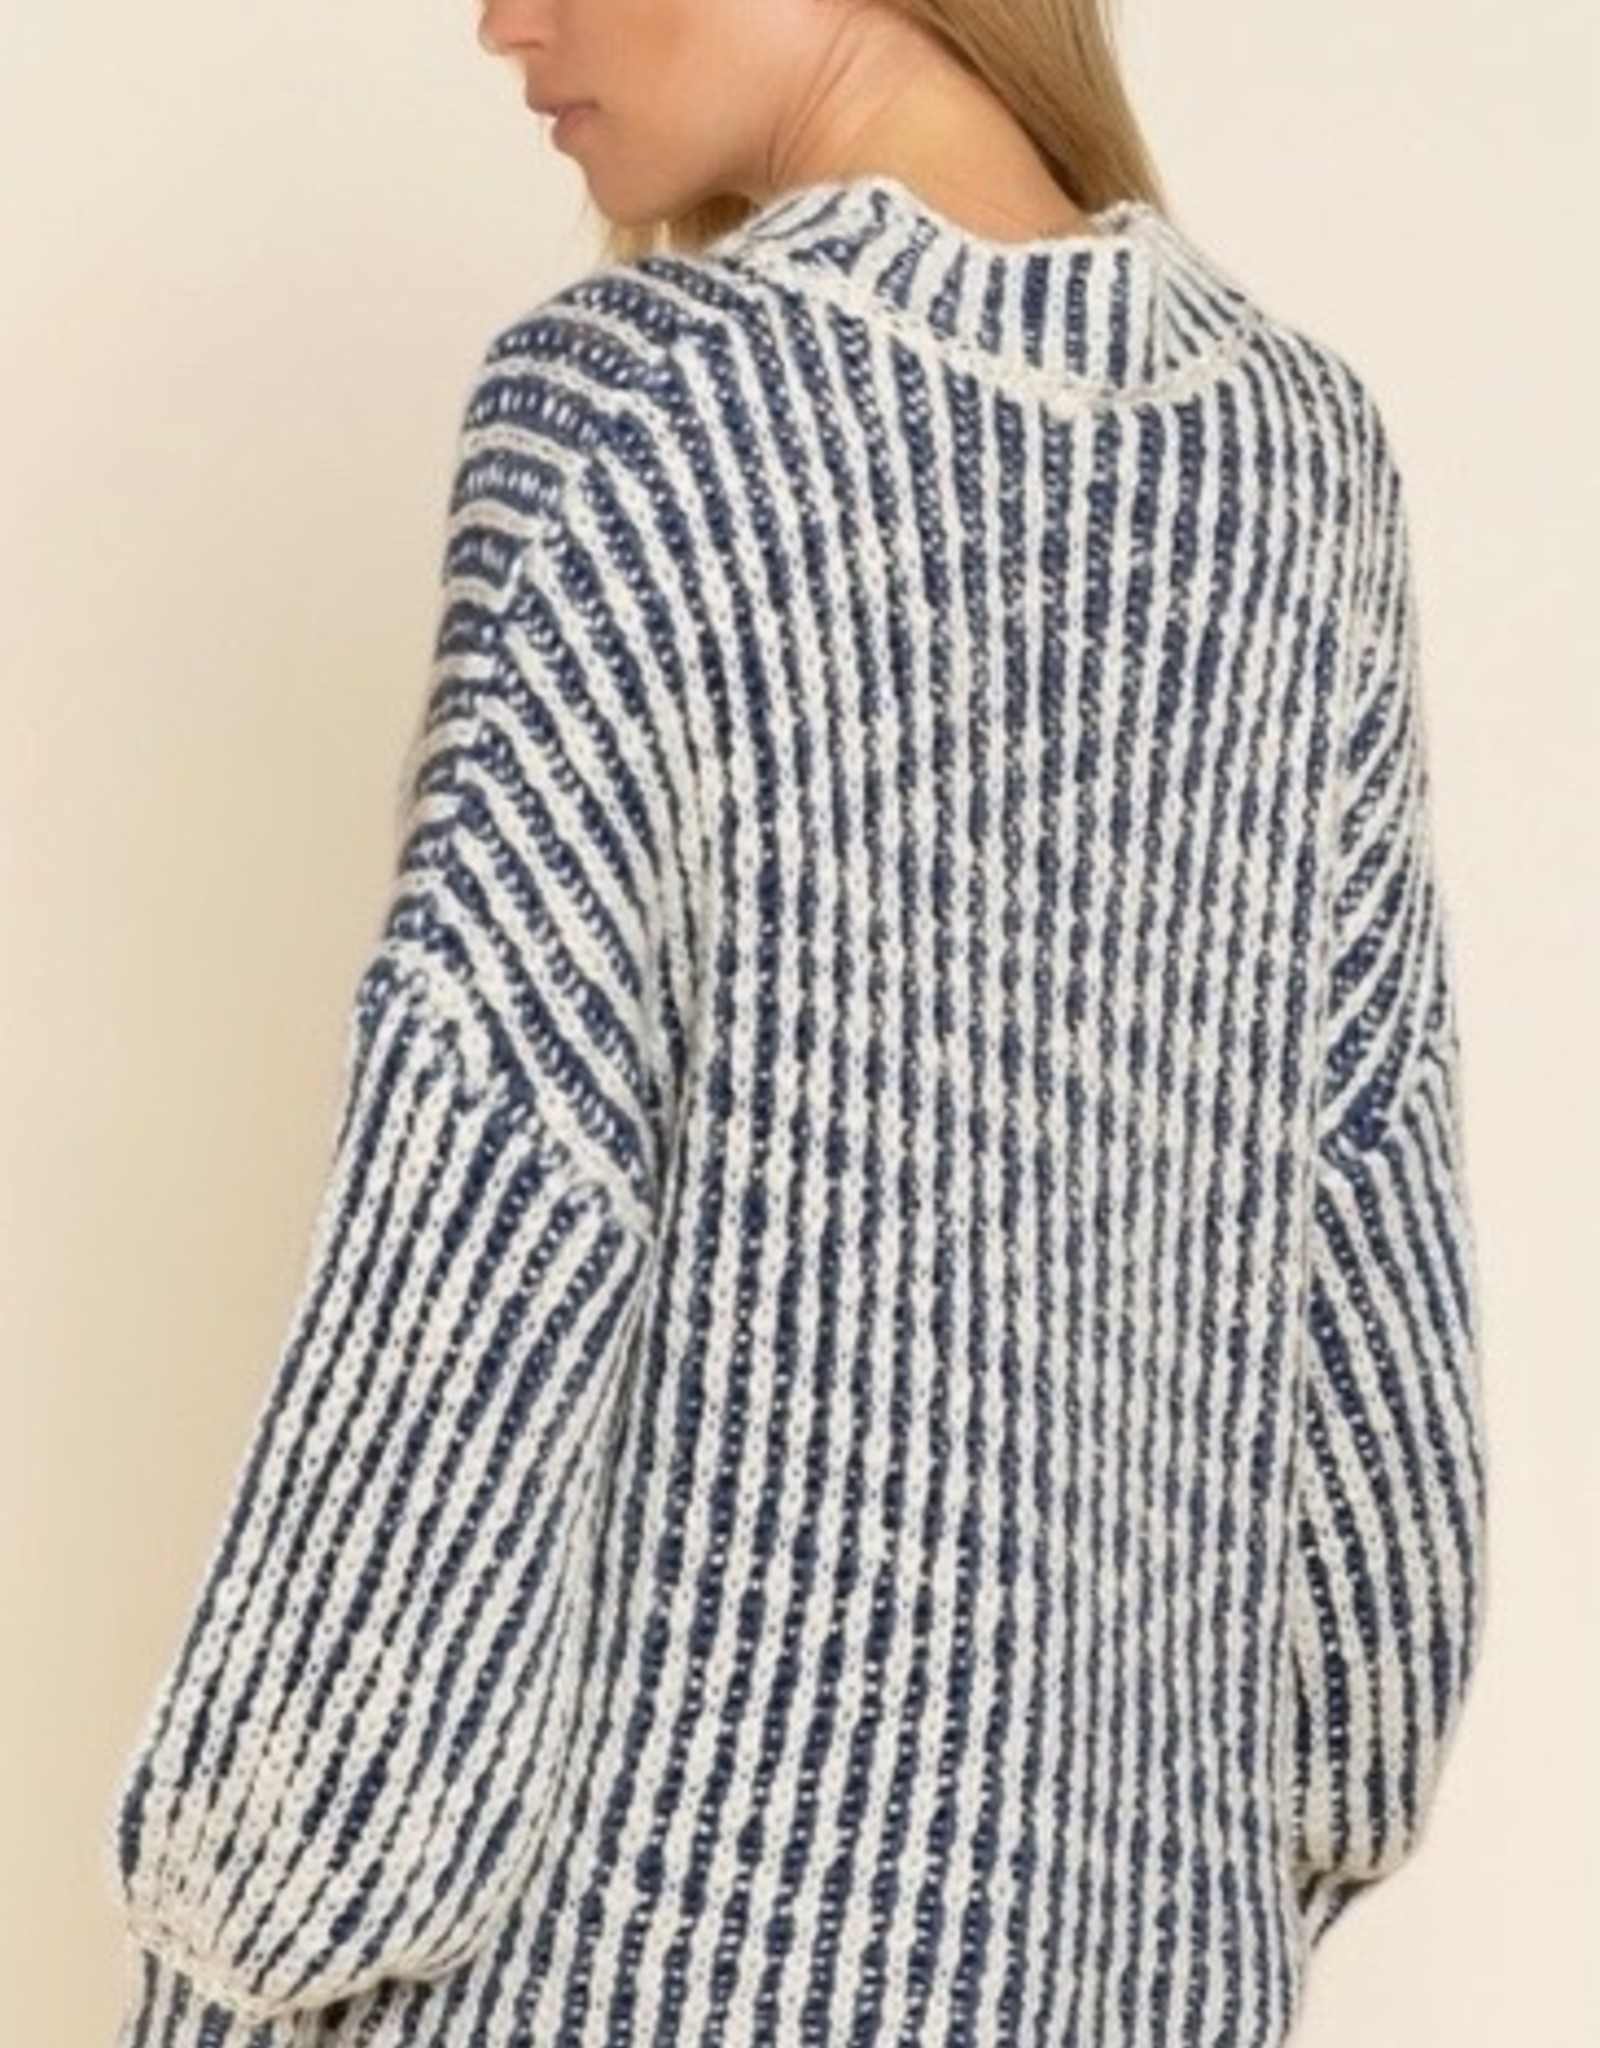 Pol Clothing SMST81 Sweater